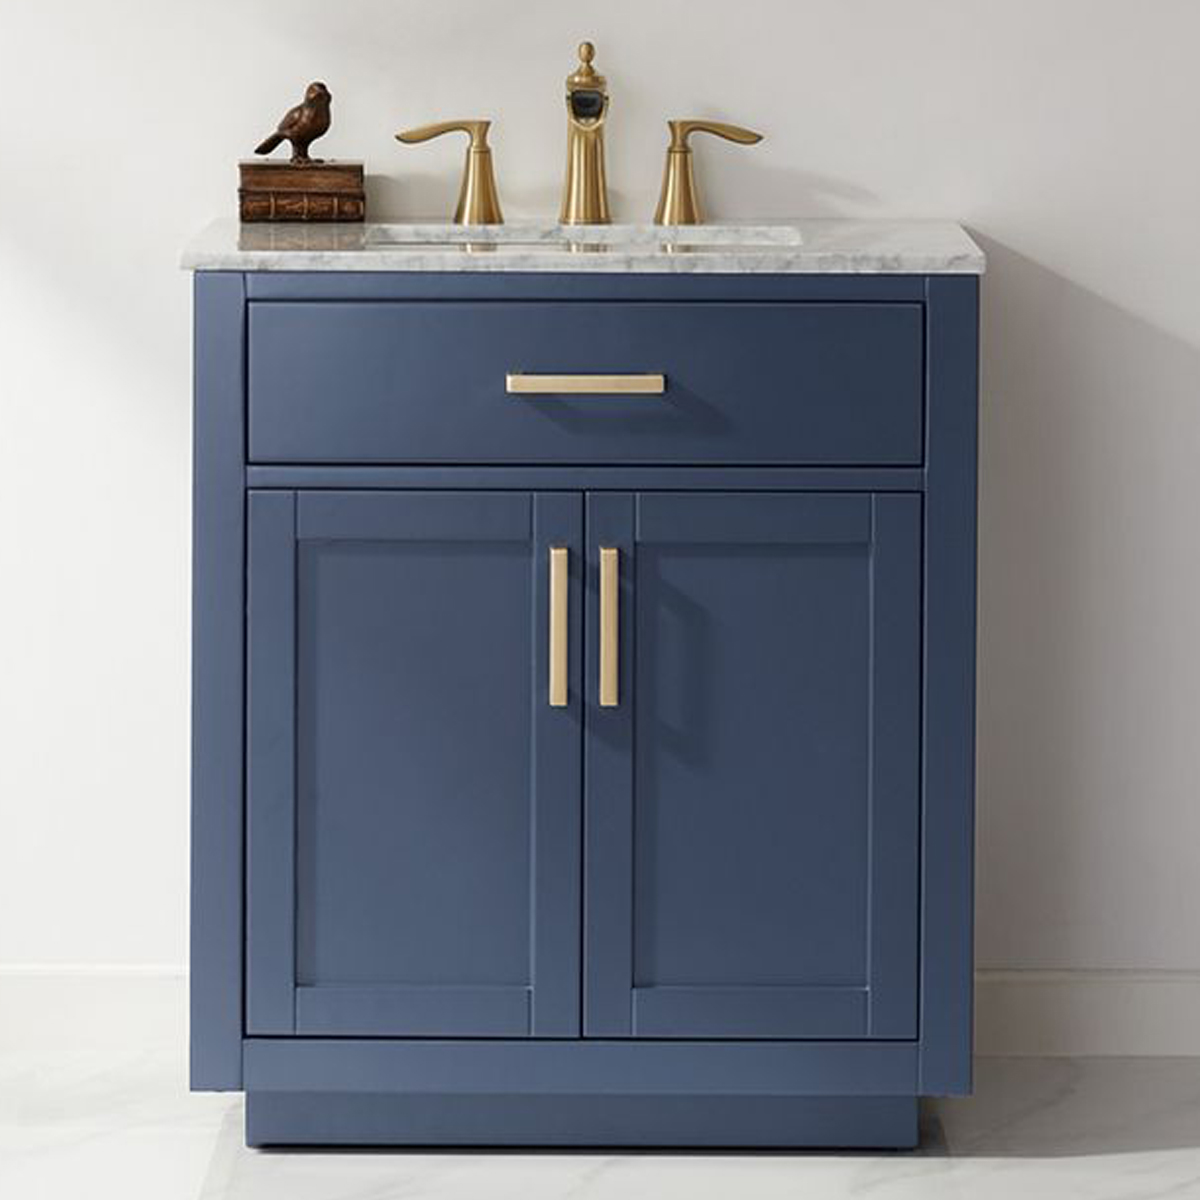 "Issac Edwards Collection 30"" Single Bathroom Vanity Set in Royal Blue and Carrara White Marble Countertop without Mirror"